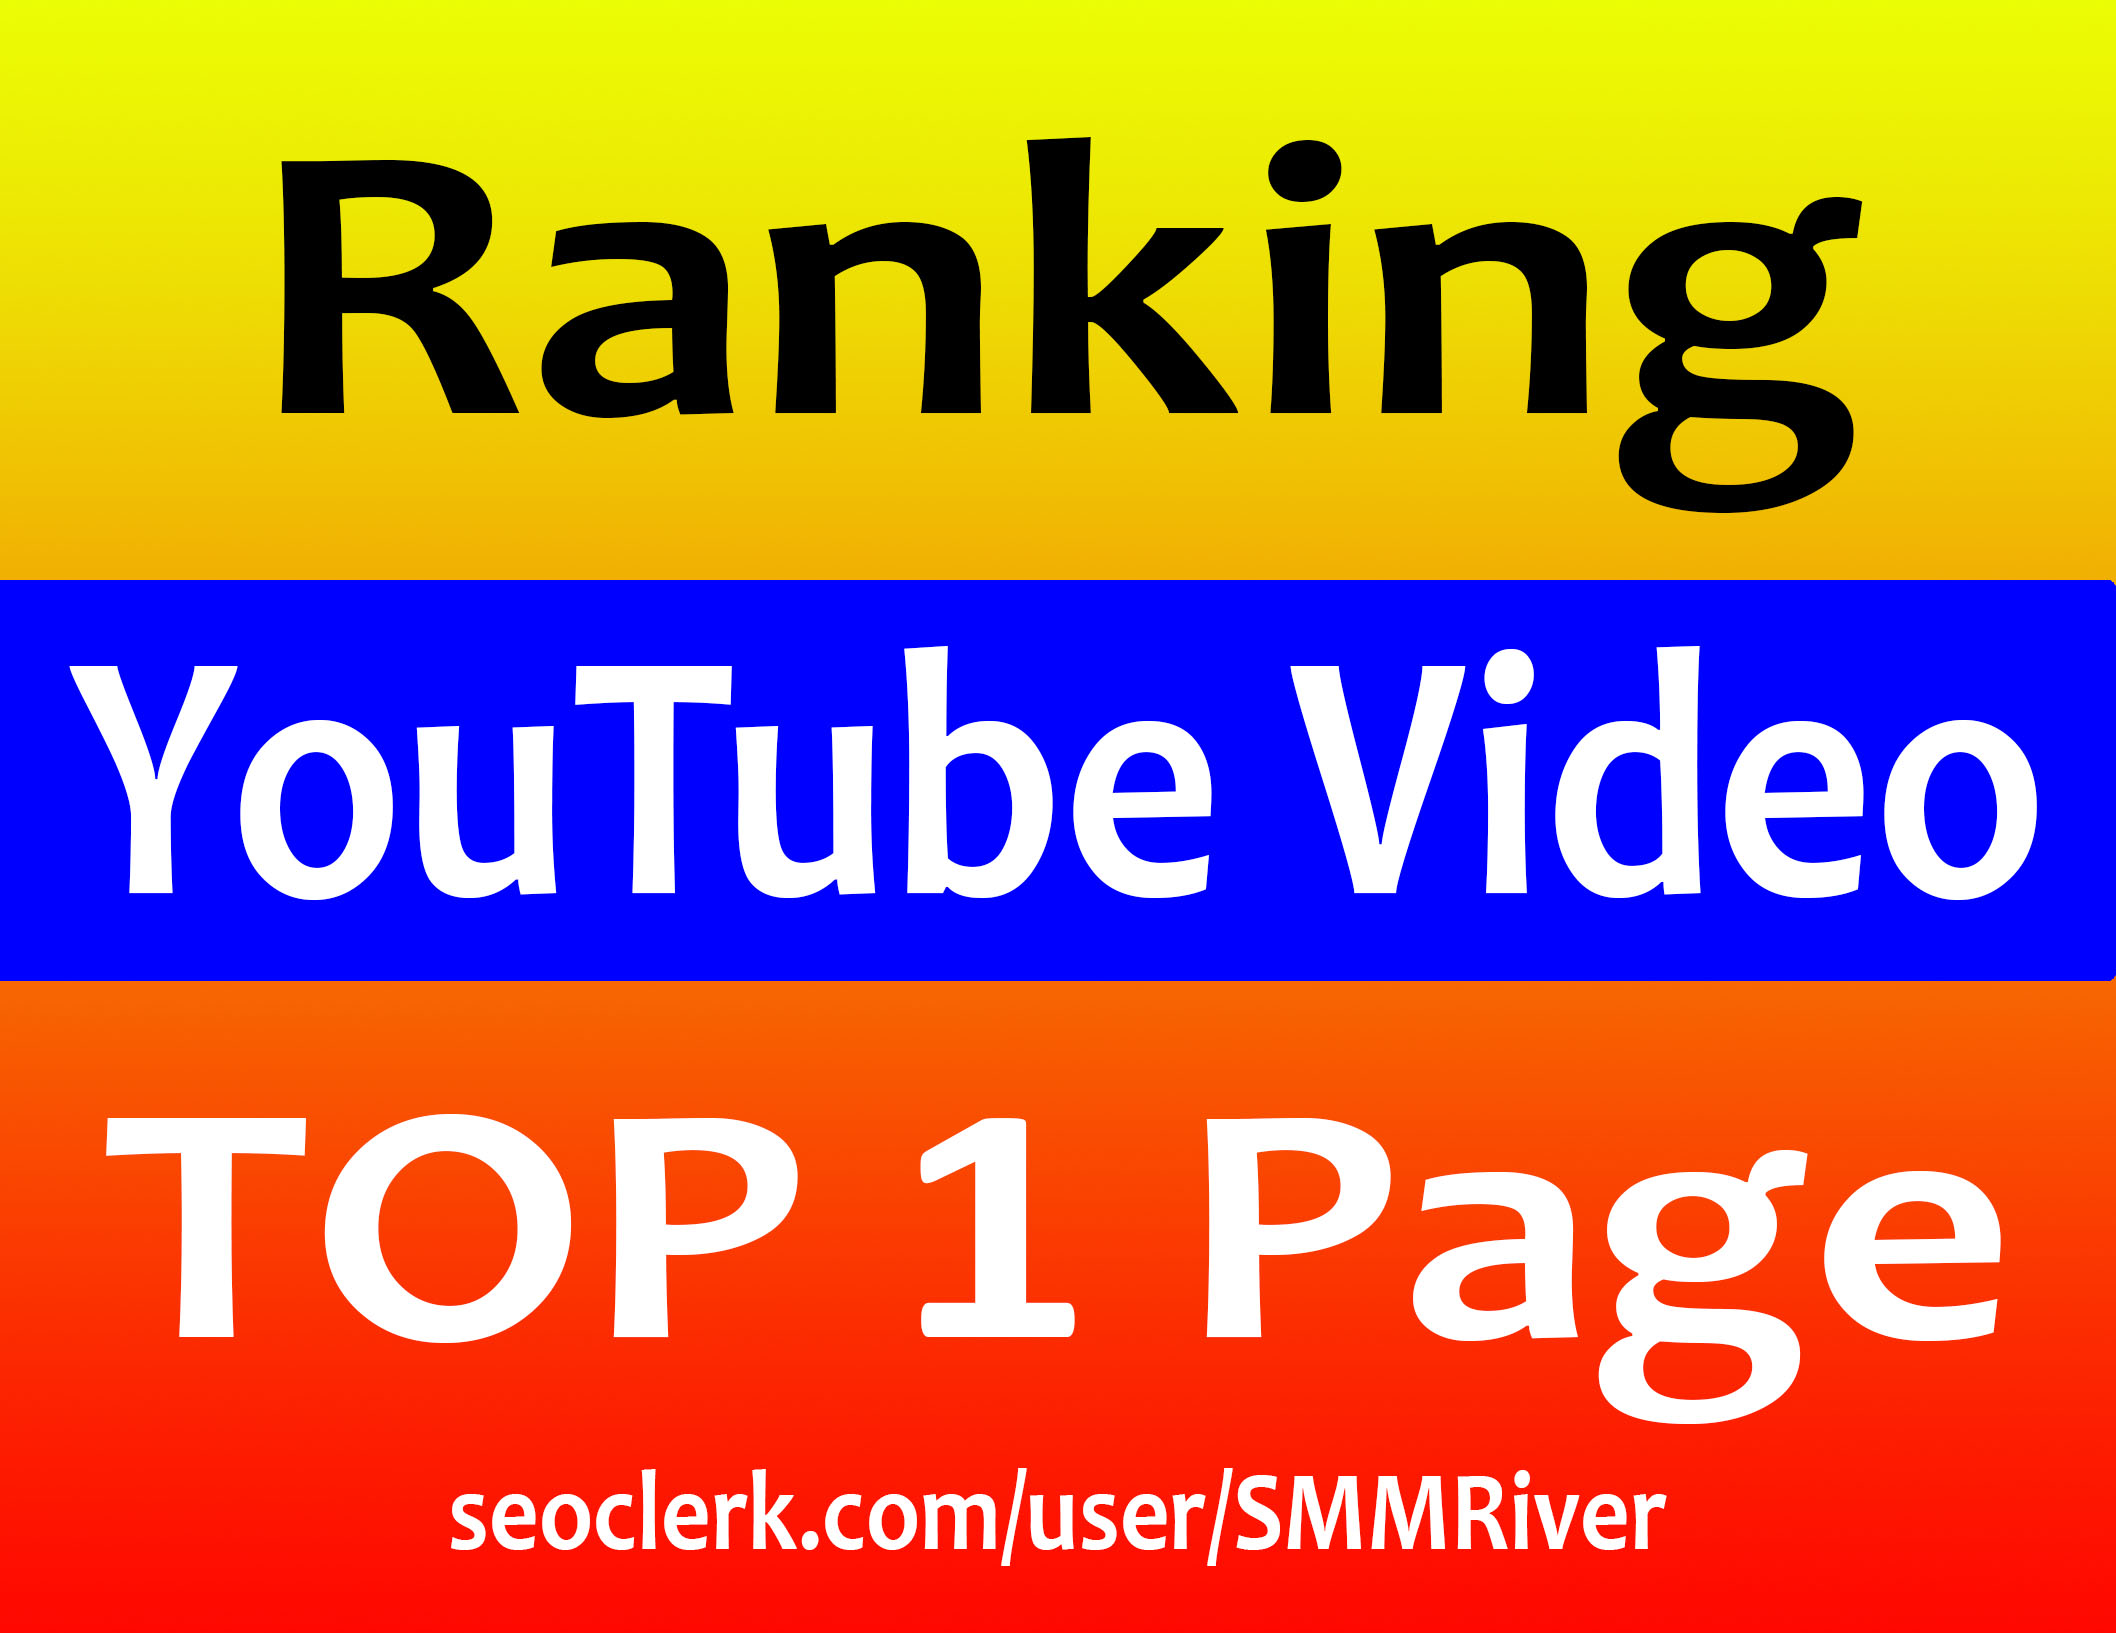 Ultimate YouTube Video Ranking Guarantee TOP 1 Page - Top Results 2019